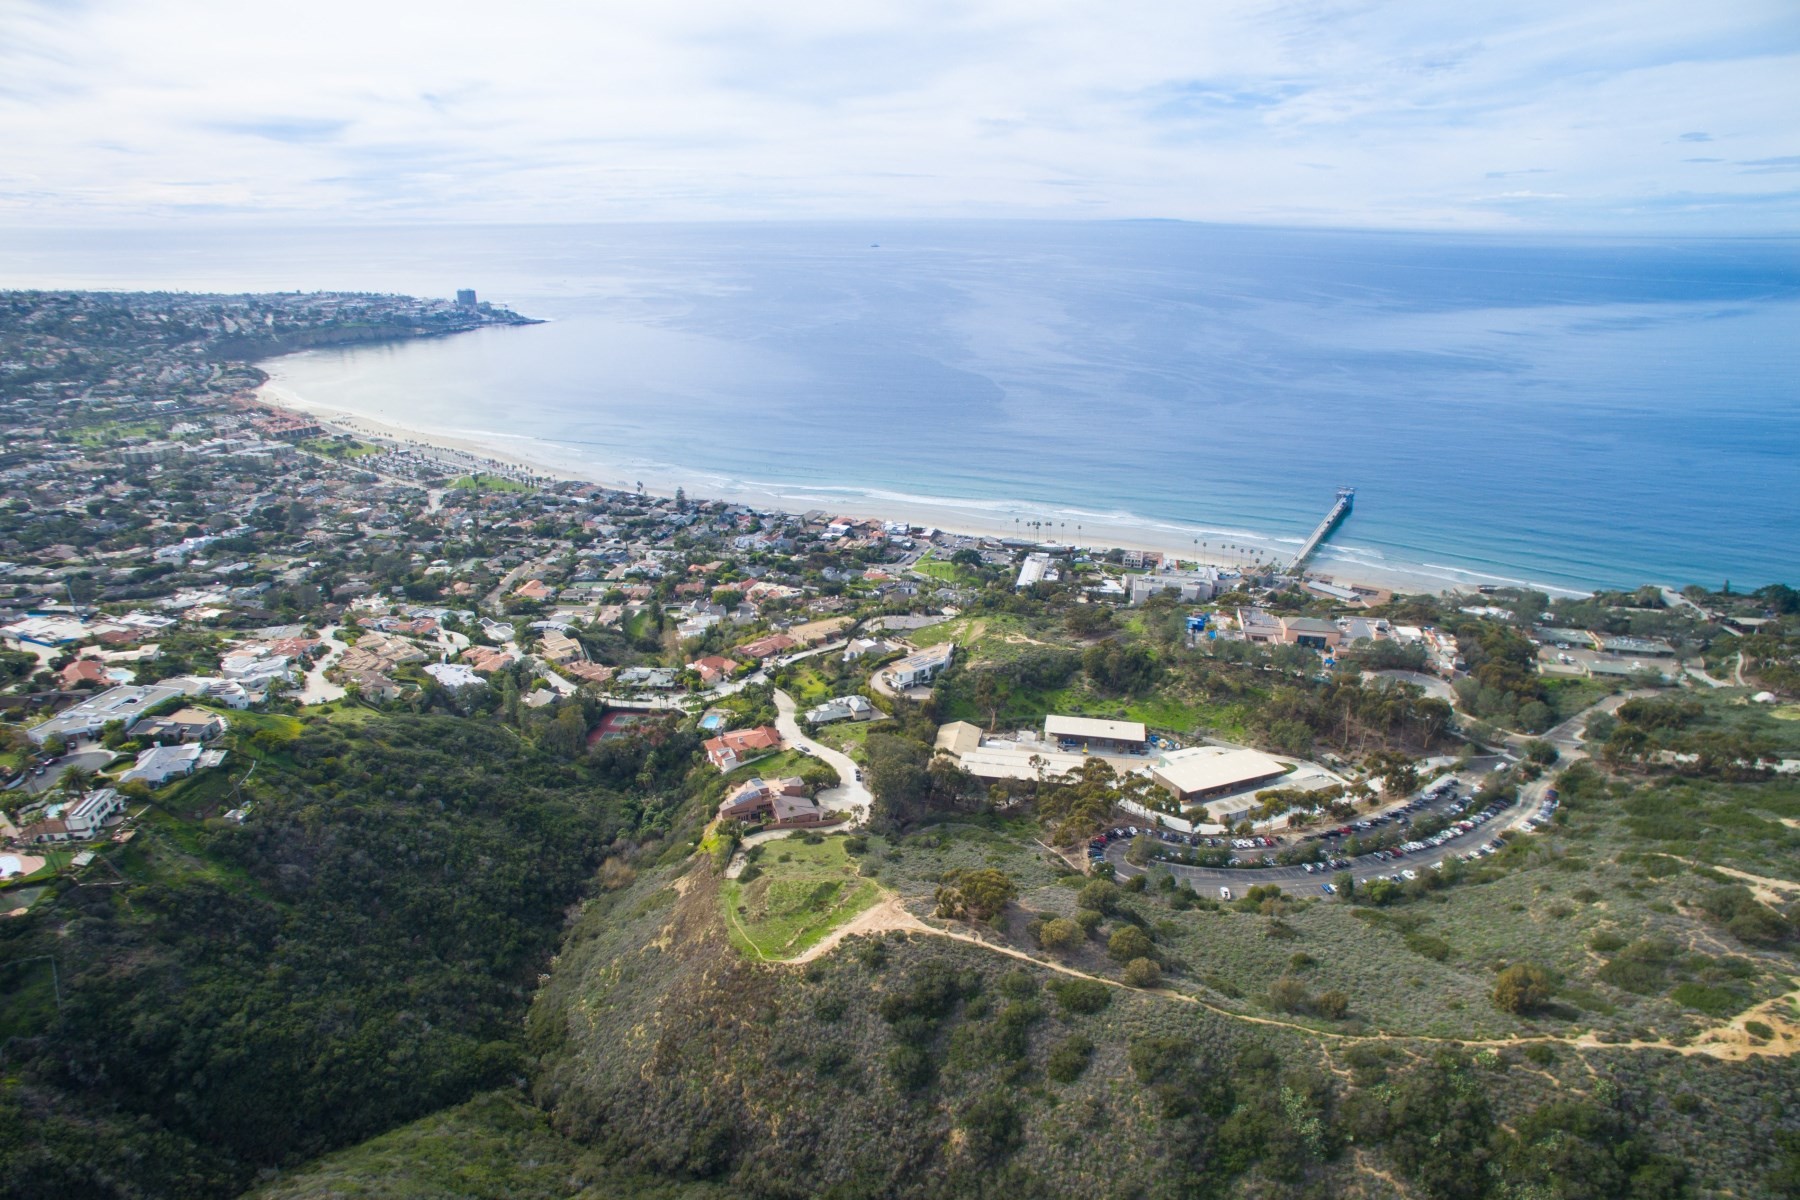 Land for Sale at Build Your Paradise 000 Ruette Nicole La Jolla, California 92037 United States